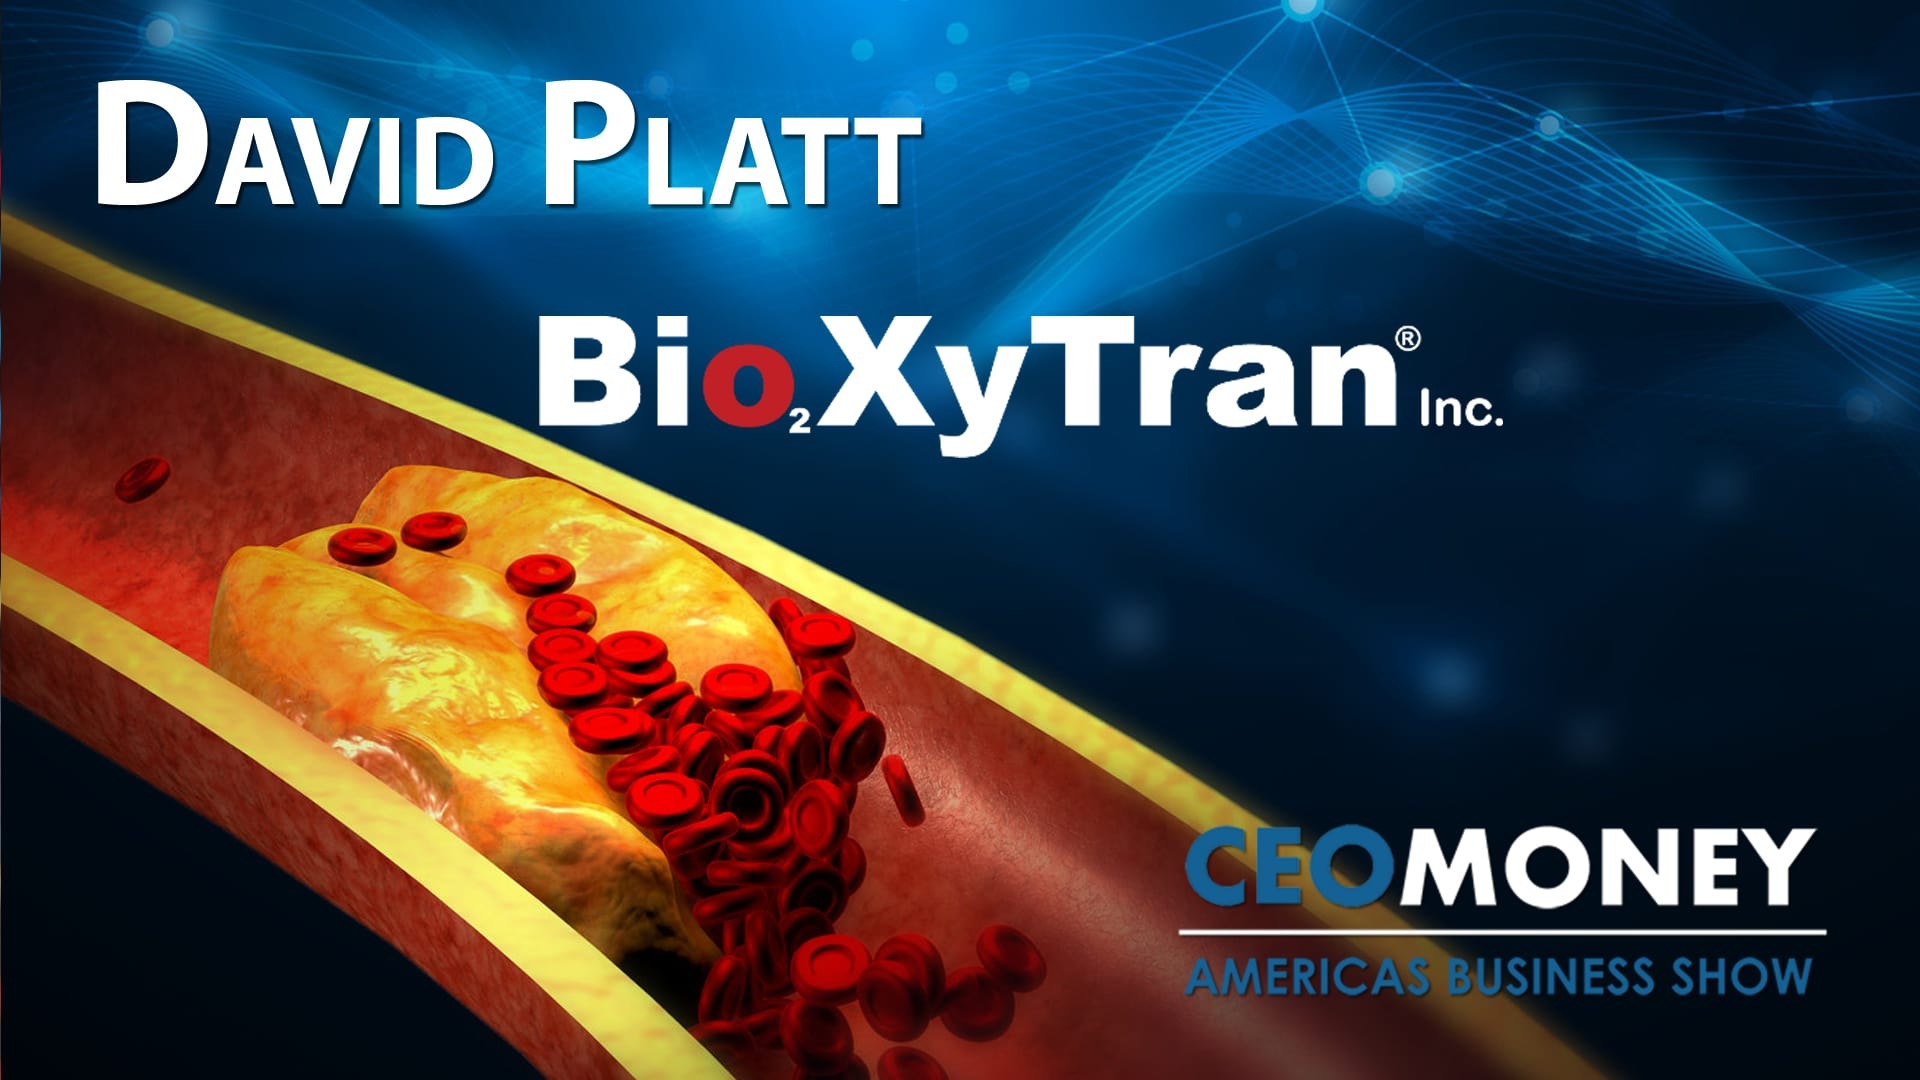 Bioxytran is developing a drug to prevent catastrophic brain damage from strokes